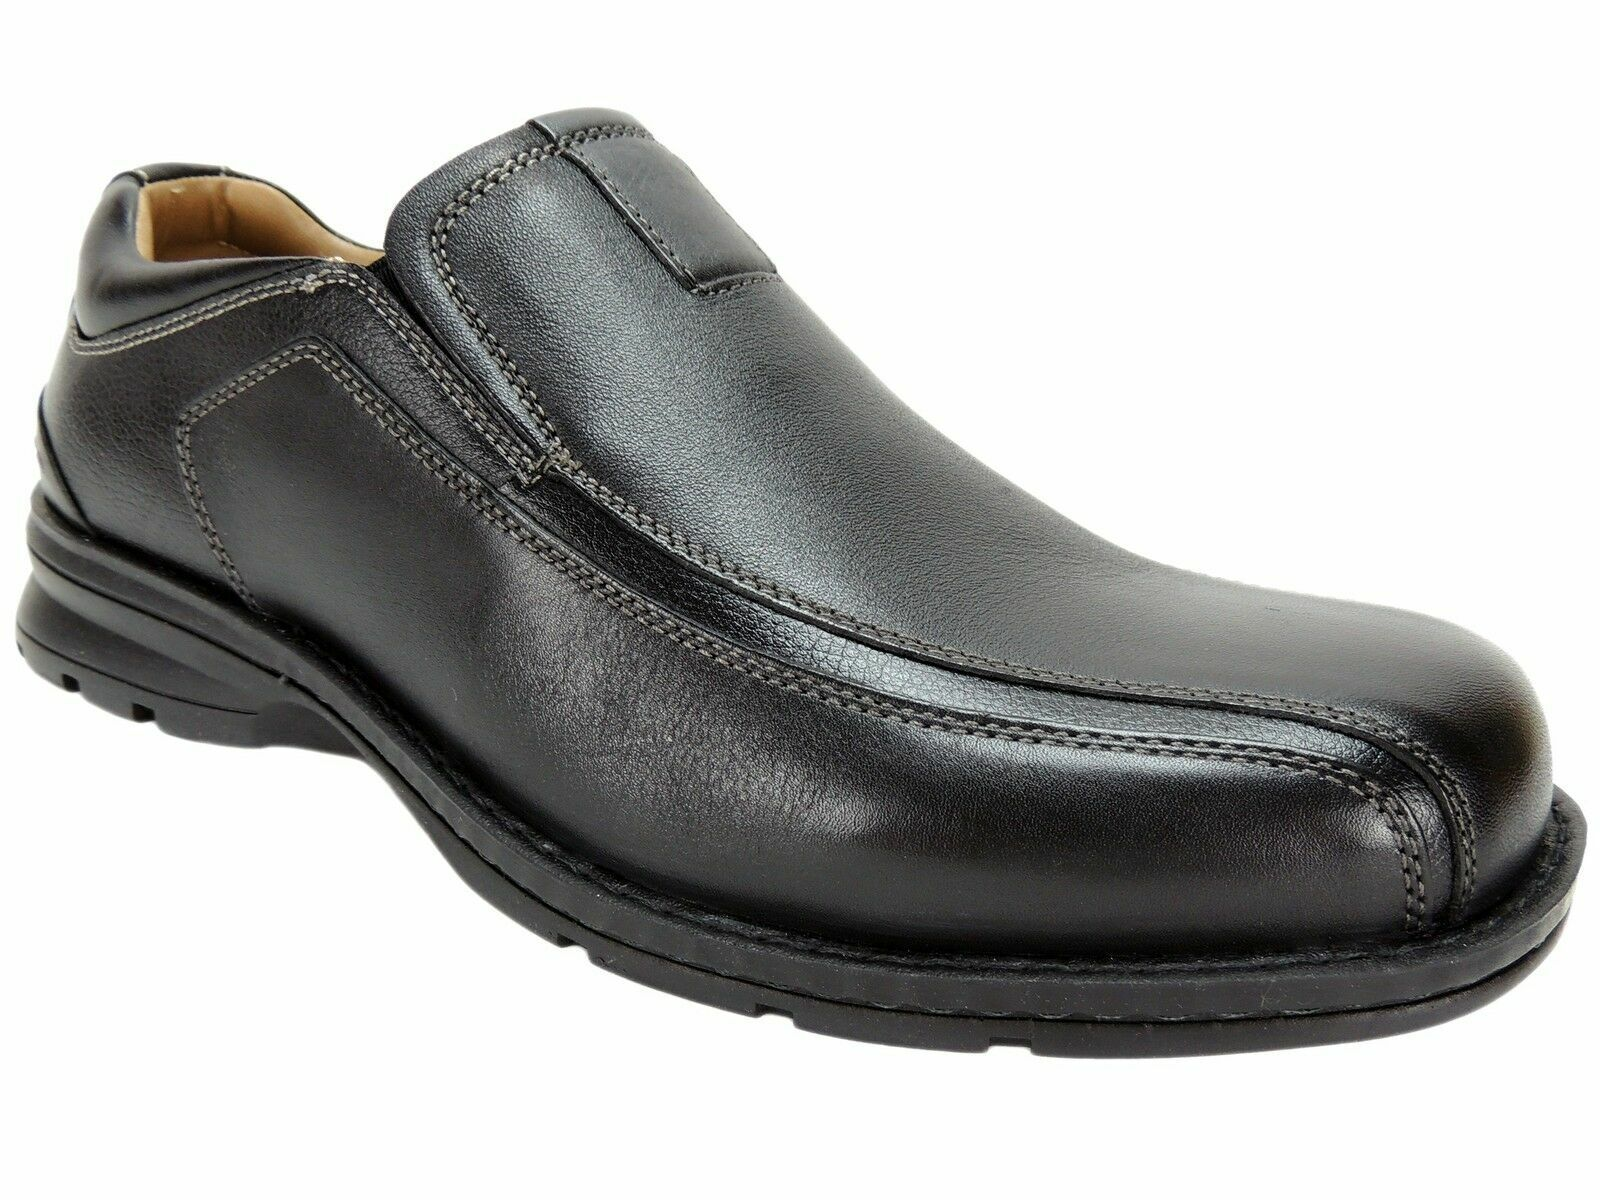 Dockers Men's Agent Medium/Wide Slip On Loafers  - 10.0 M